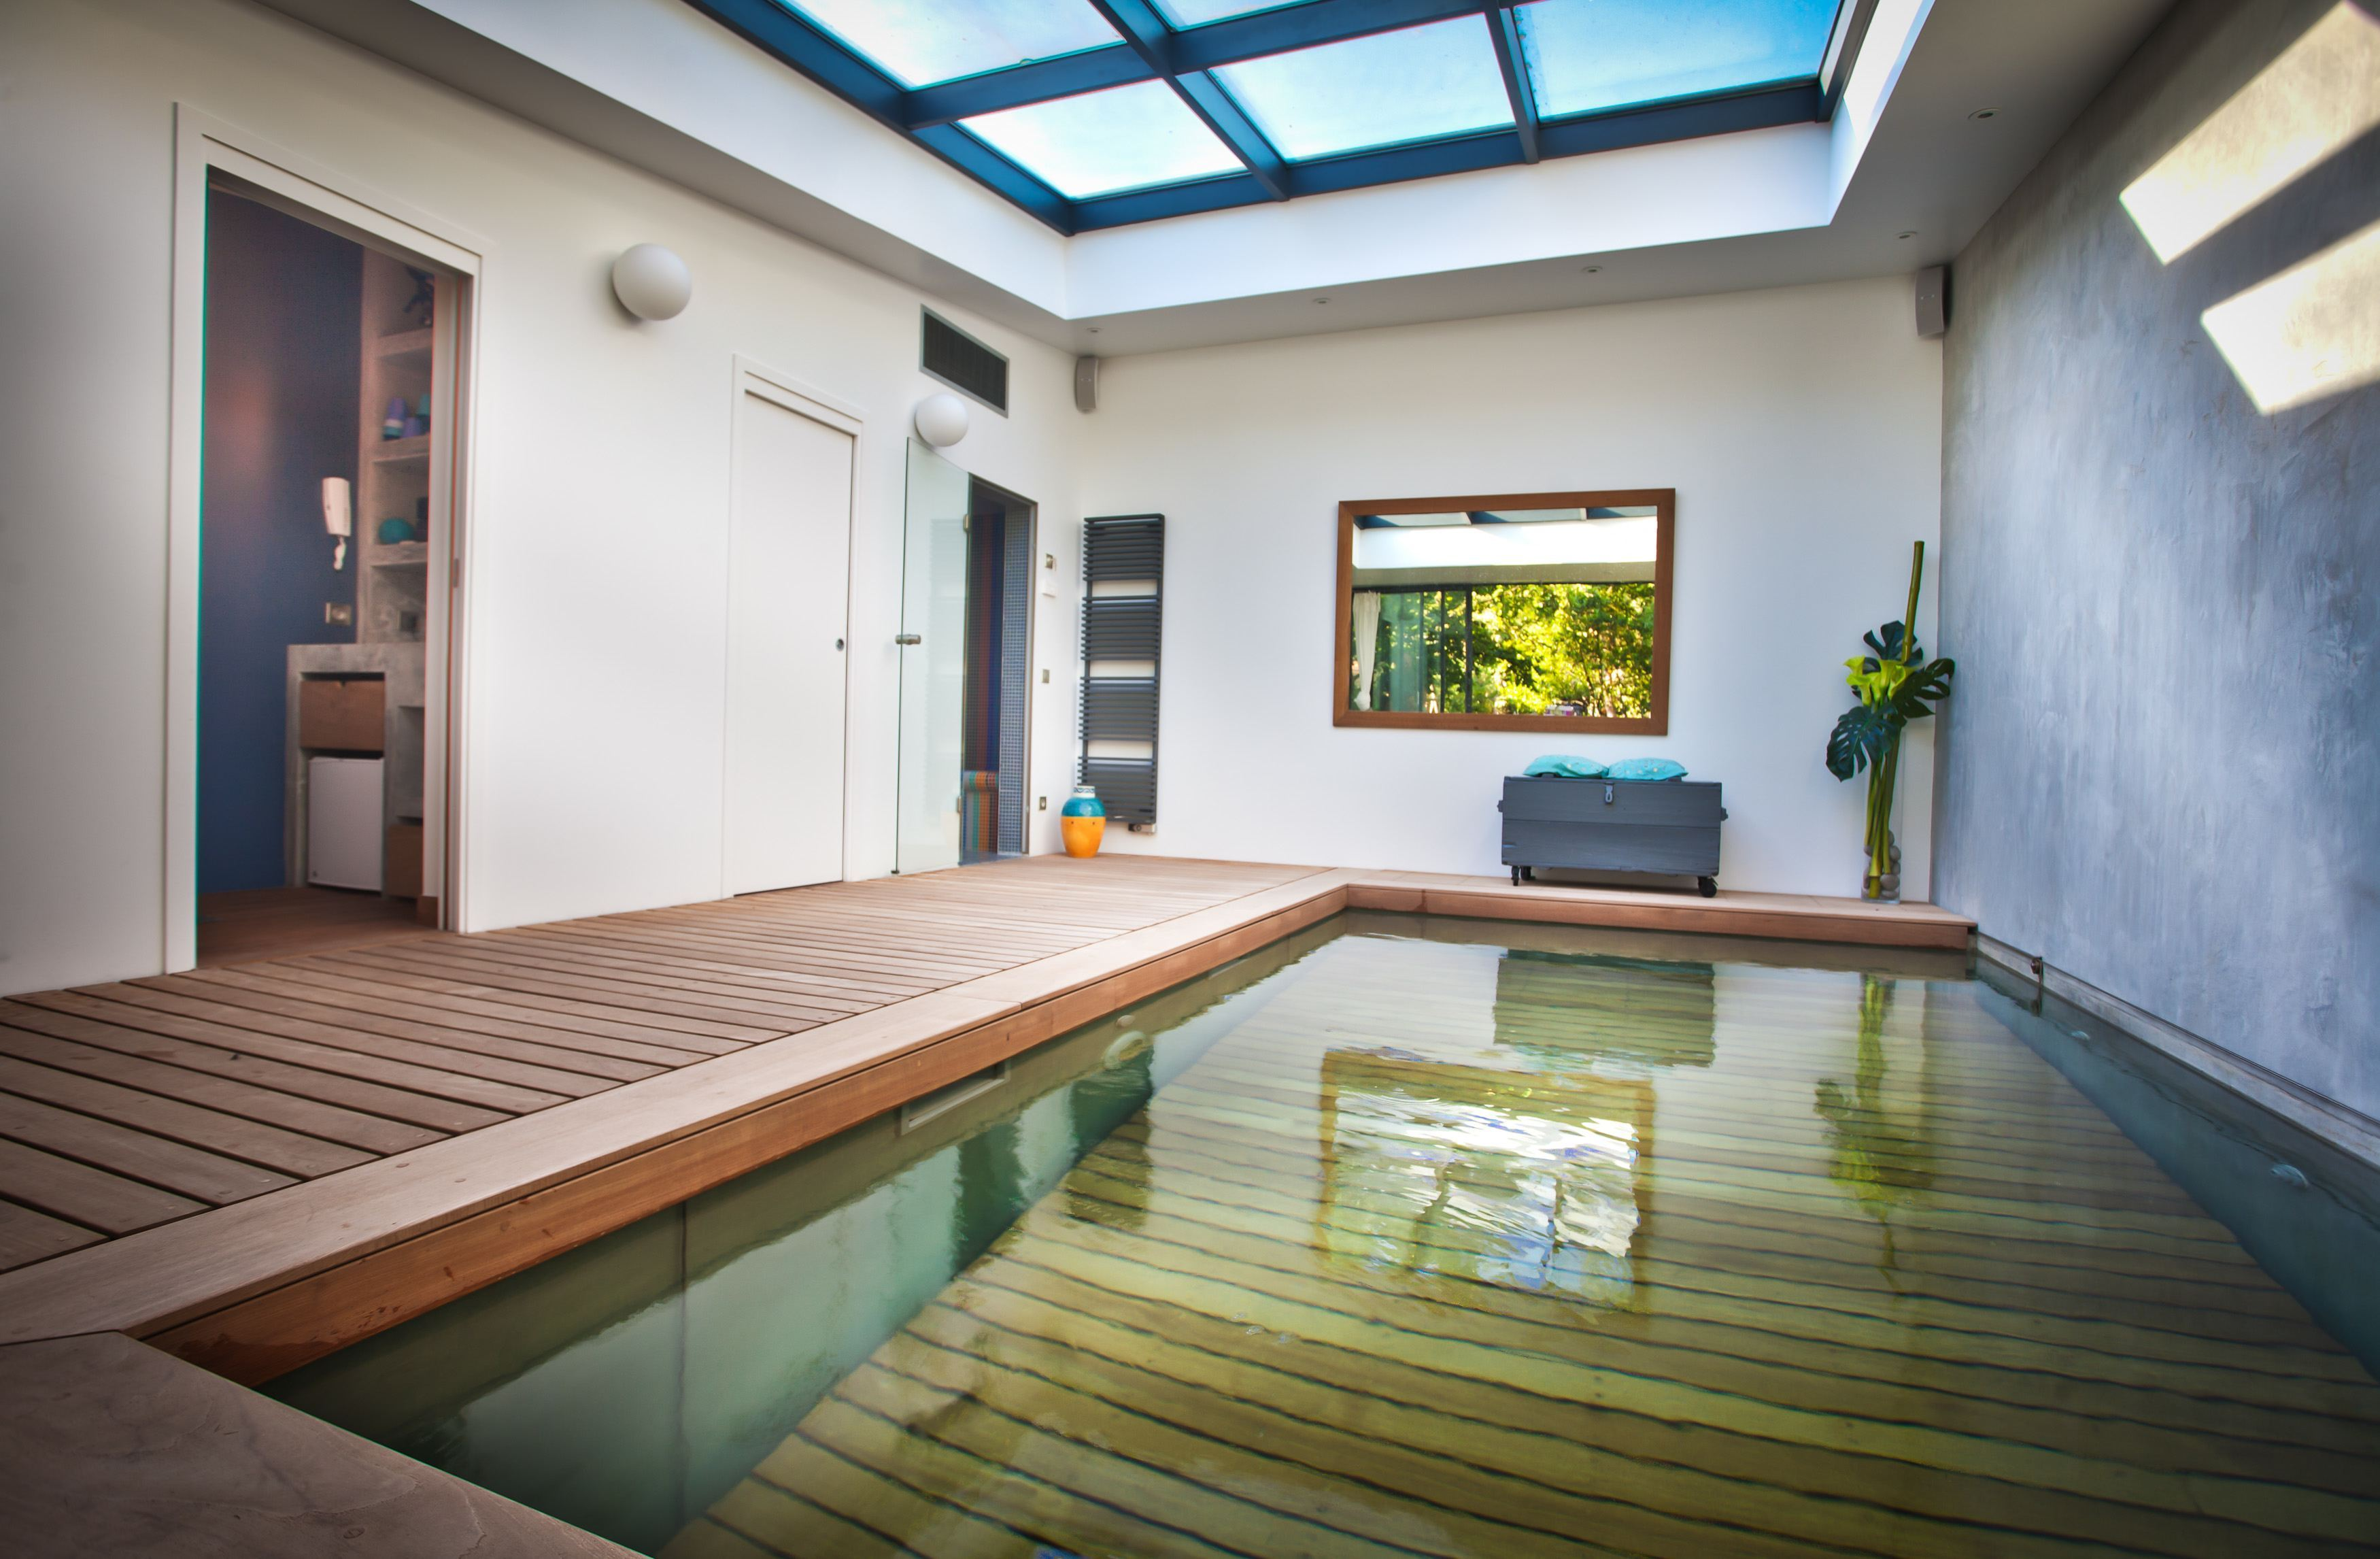 Photos cette piscine couverte donne envie de s 39 installer for Voir decoration maison interieur